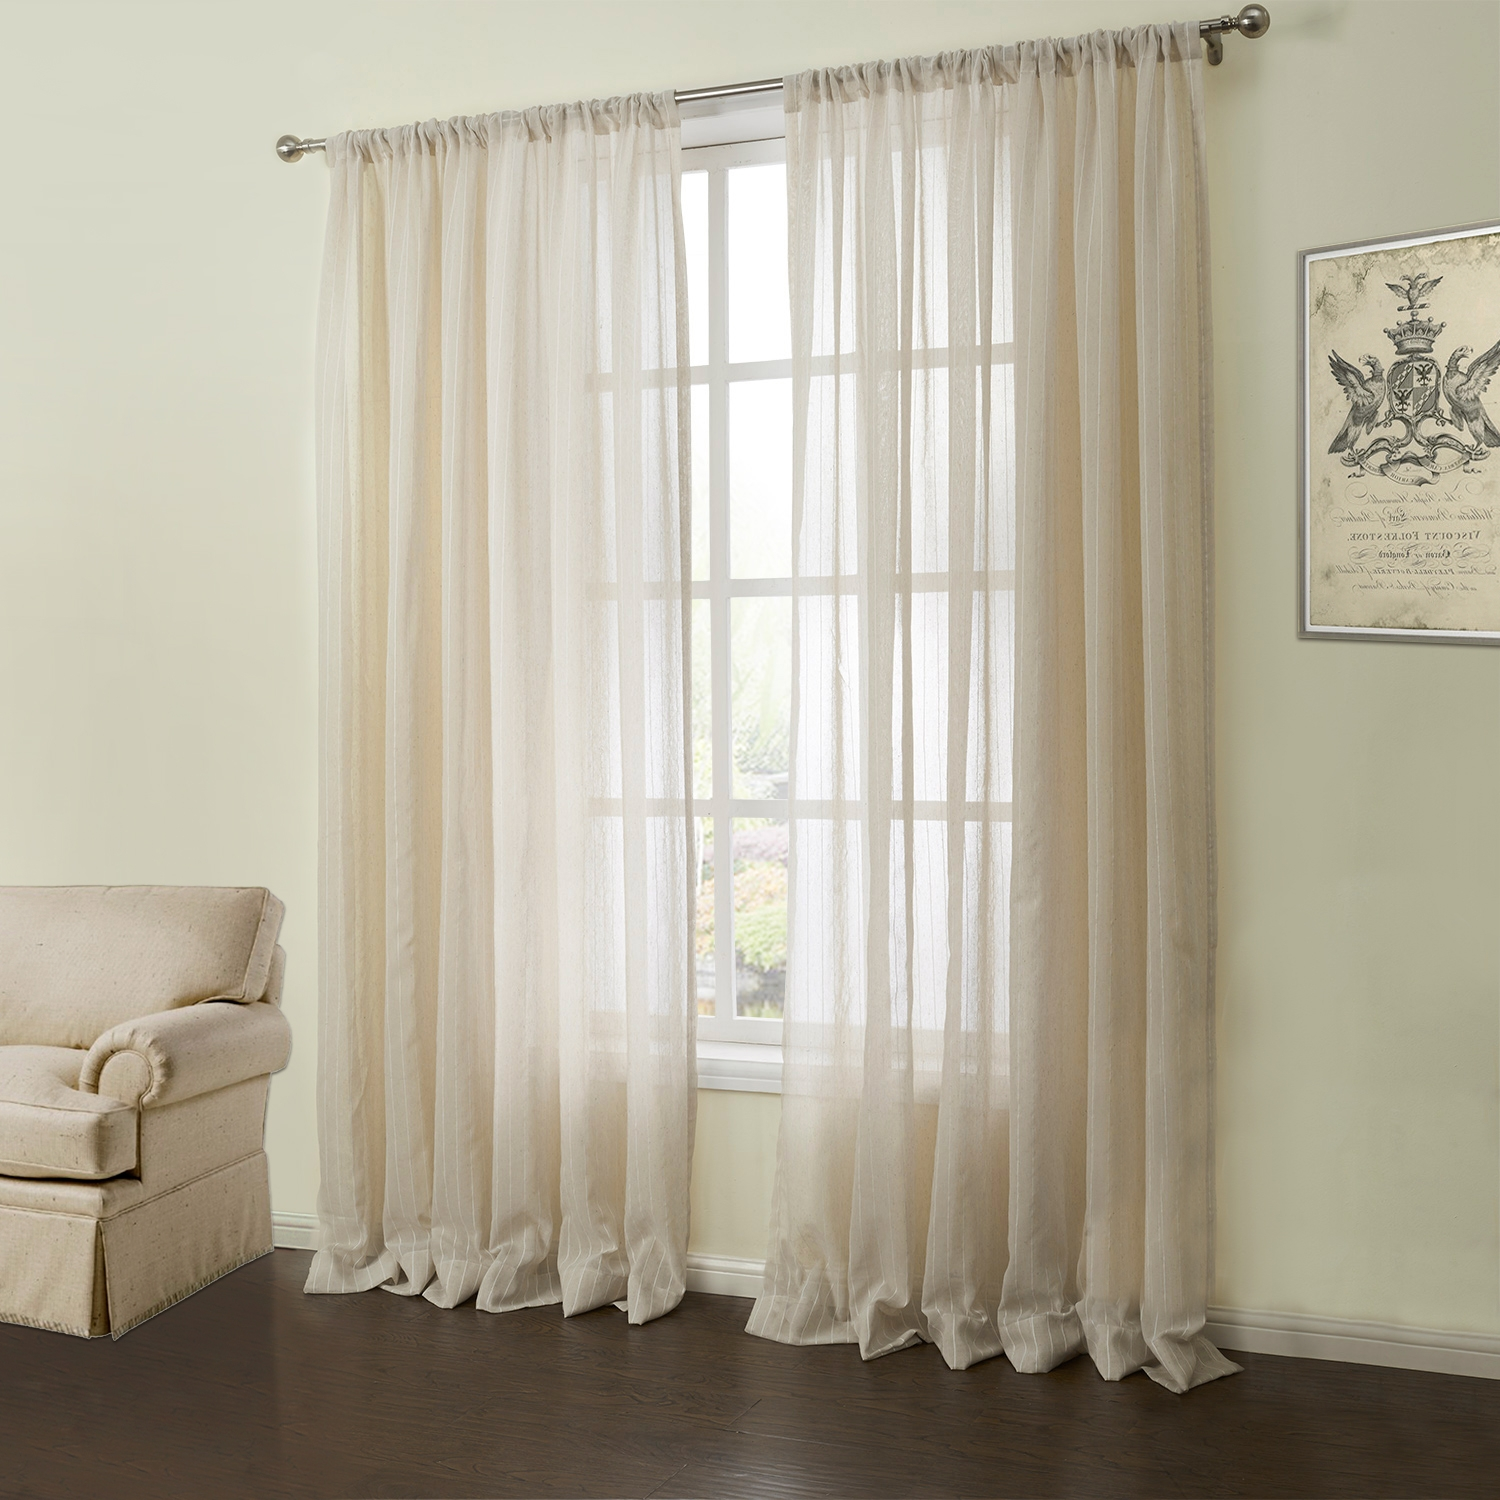 Sheer Curtains Ring Top Chiffon Cutain Voil Panel Curtain Sheer Intended For Linen Gauze Curtains (Image 14 of 15)